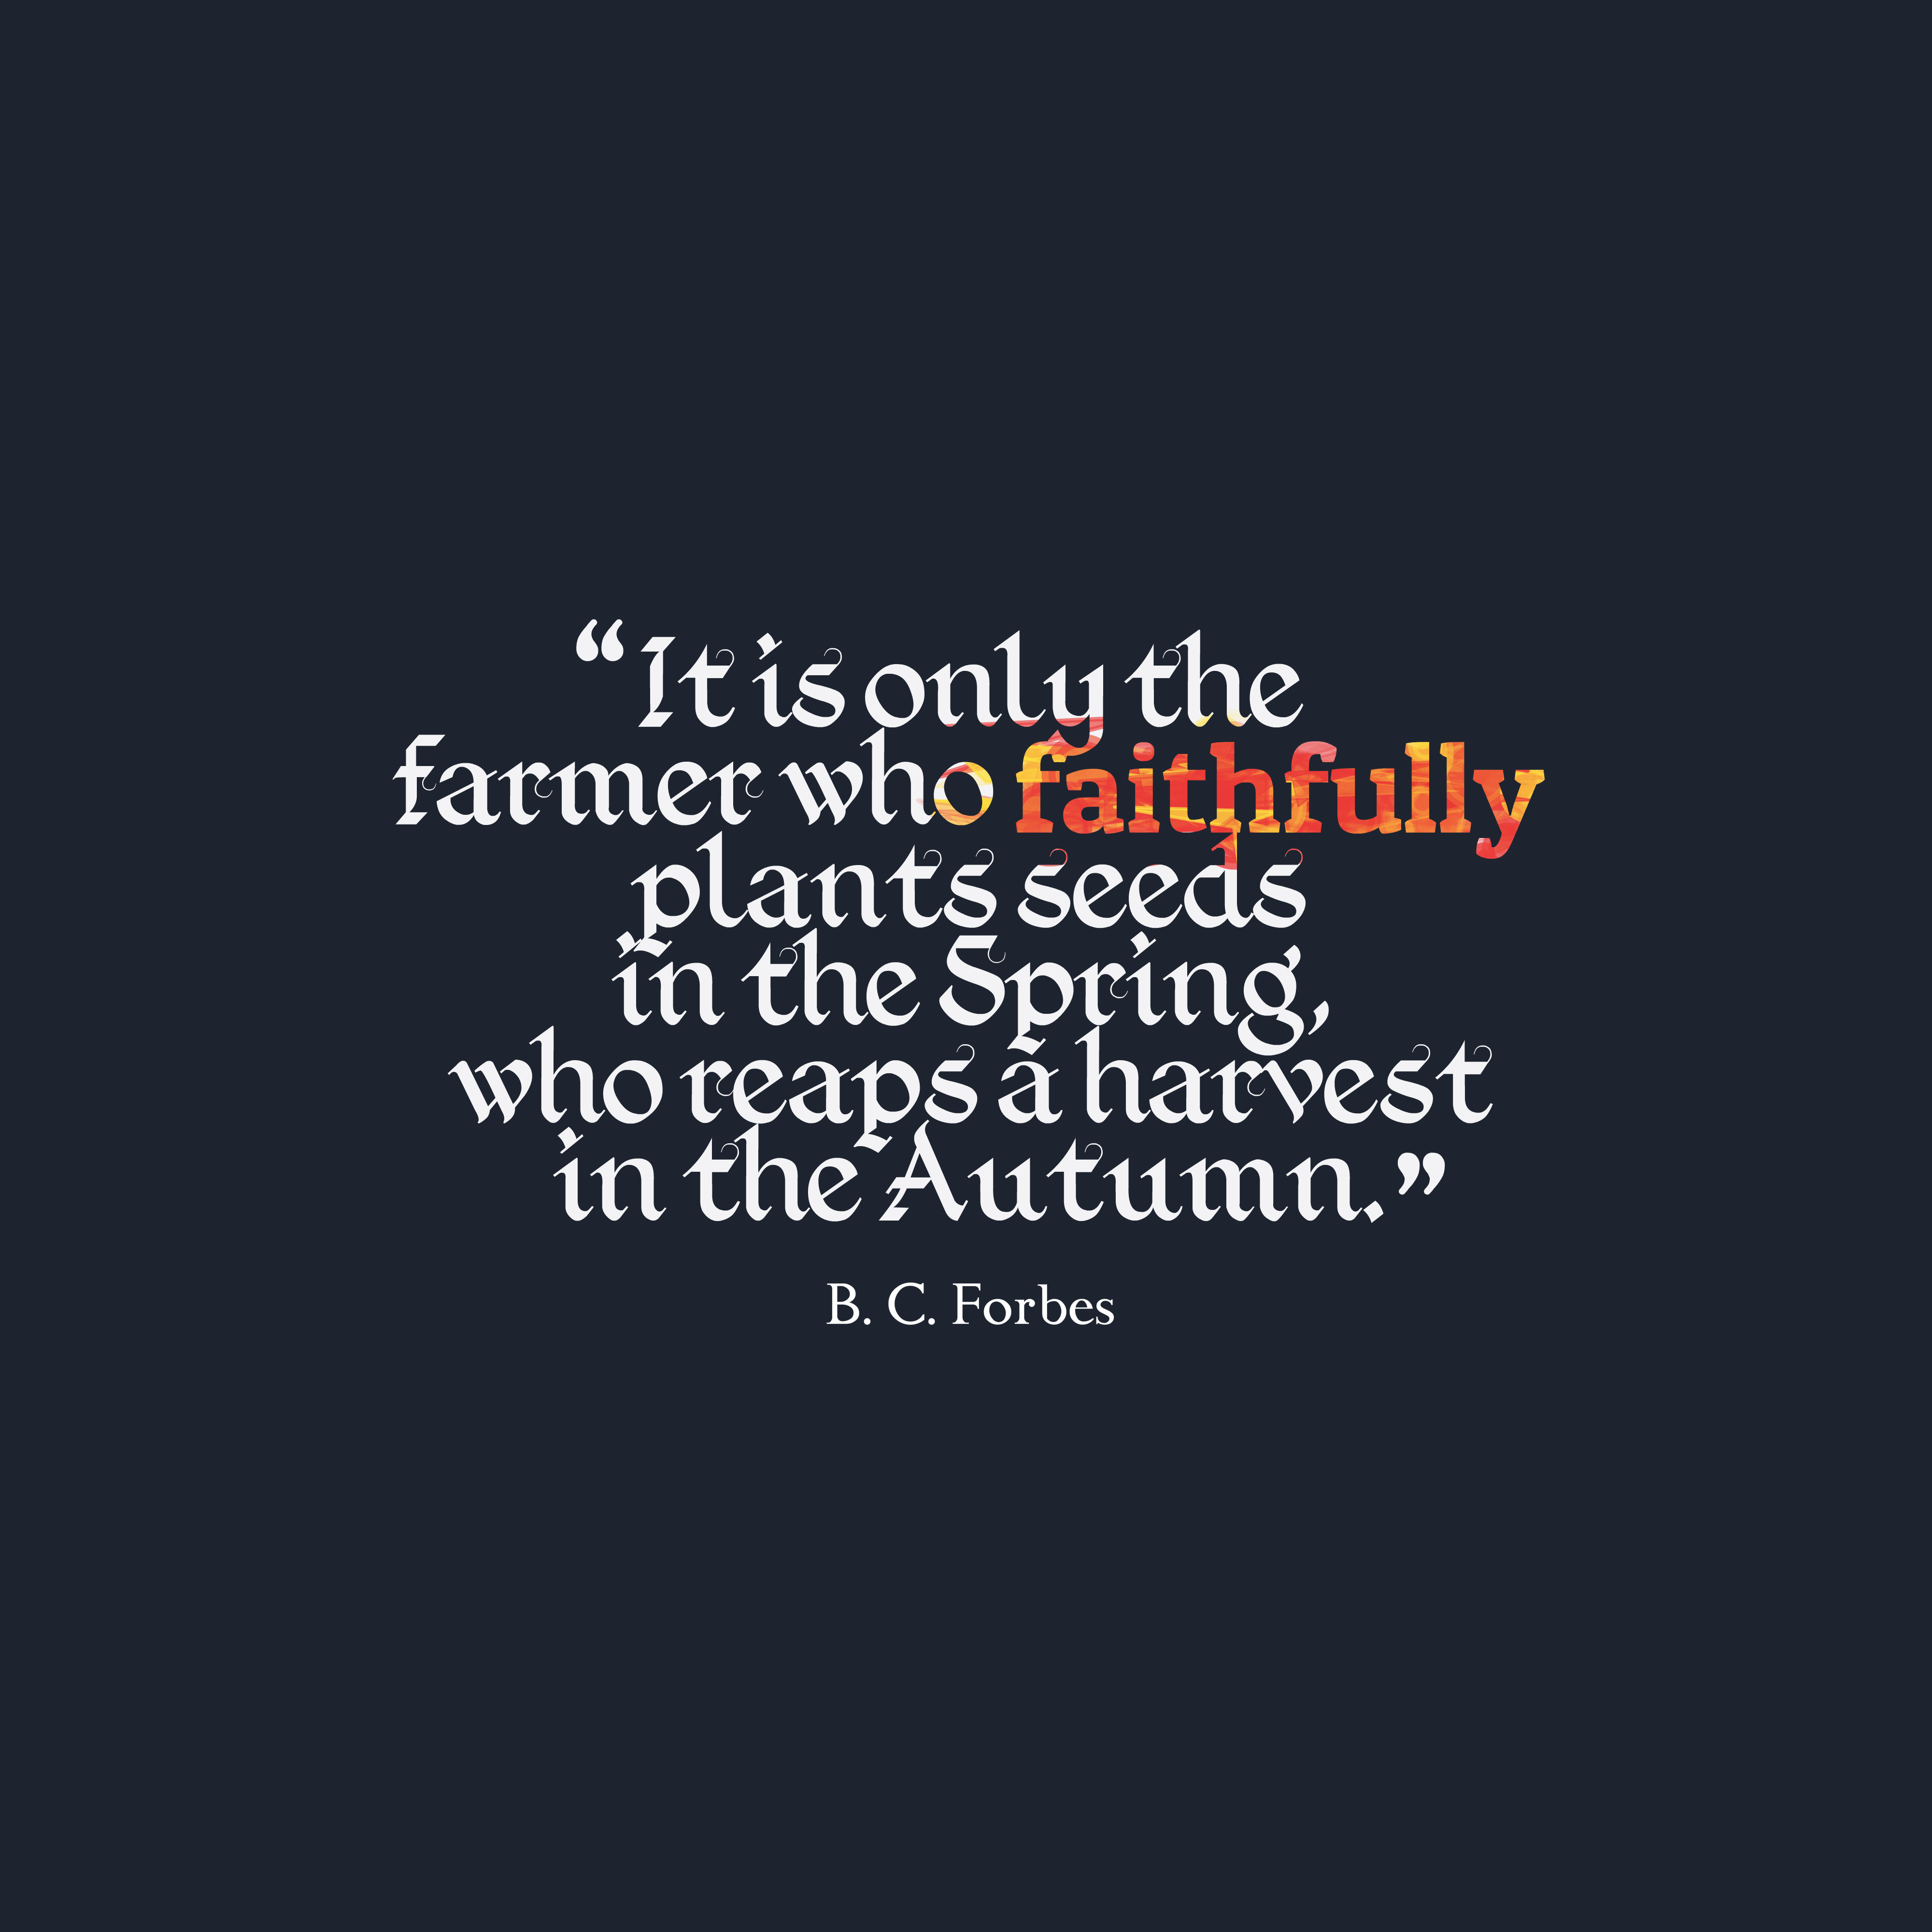 Quotes image of It is only the farmer who faithfully plants seeds in the Spring, who reaps a harvest in the Autumn.